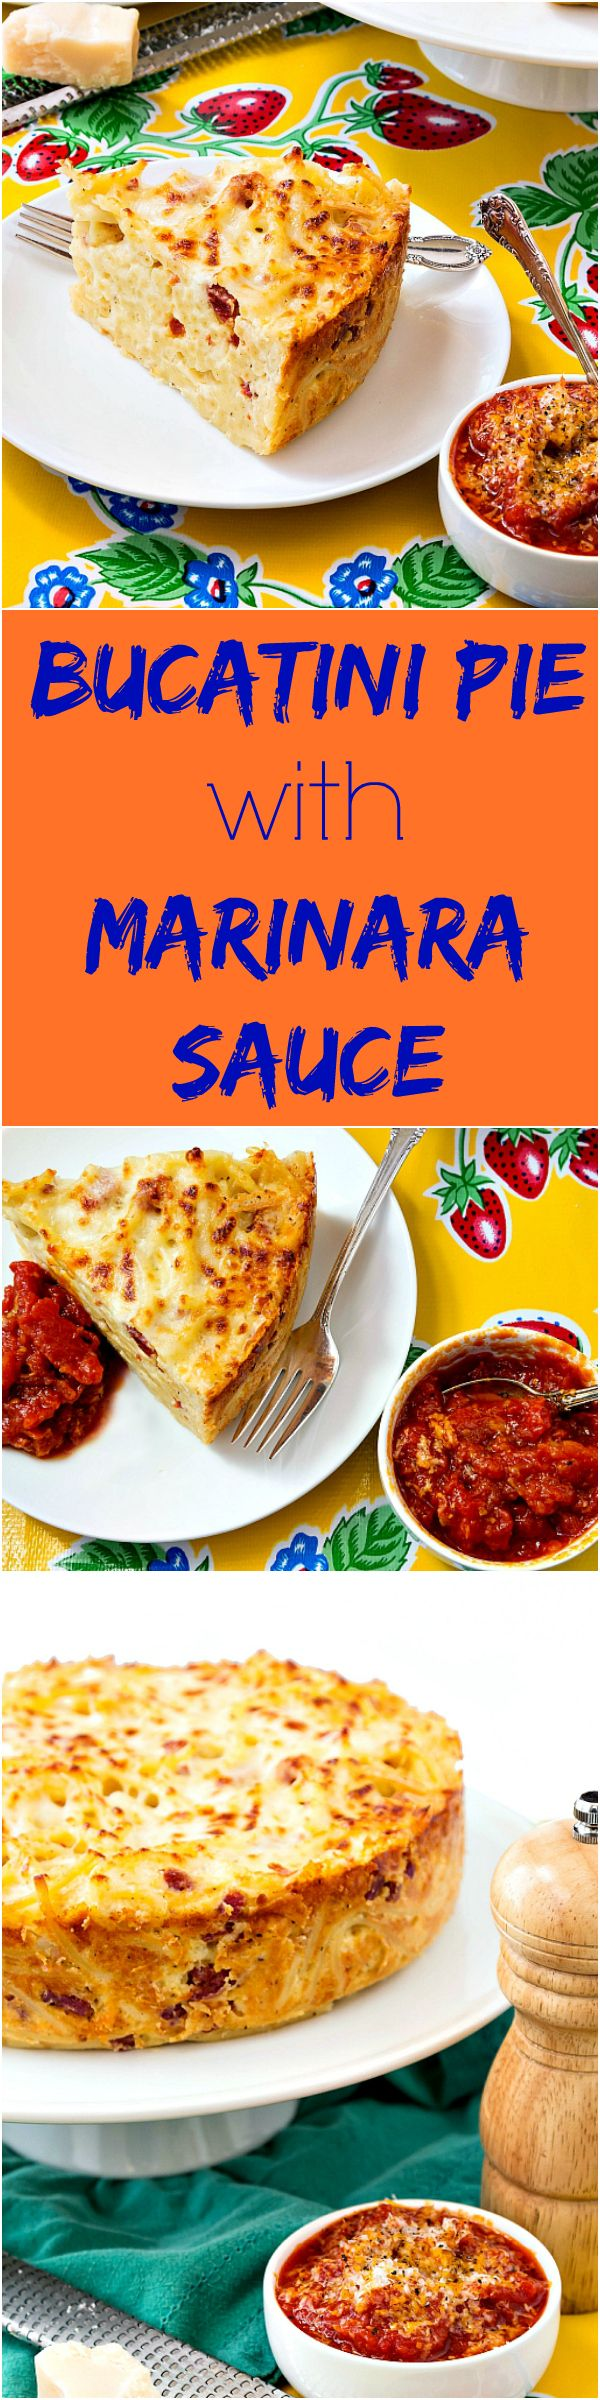 Bucatini Pie with Marinara Sauce for #tbtfood. Italian comfort food at its best! If you love baked macaroni and cheese or spaghetti pie, this bucatini pie recipe is for you! Rich, cheesy and sliceable, spaghetti pie is a great way to stretch pasta to serv